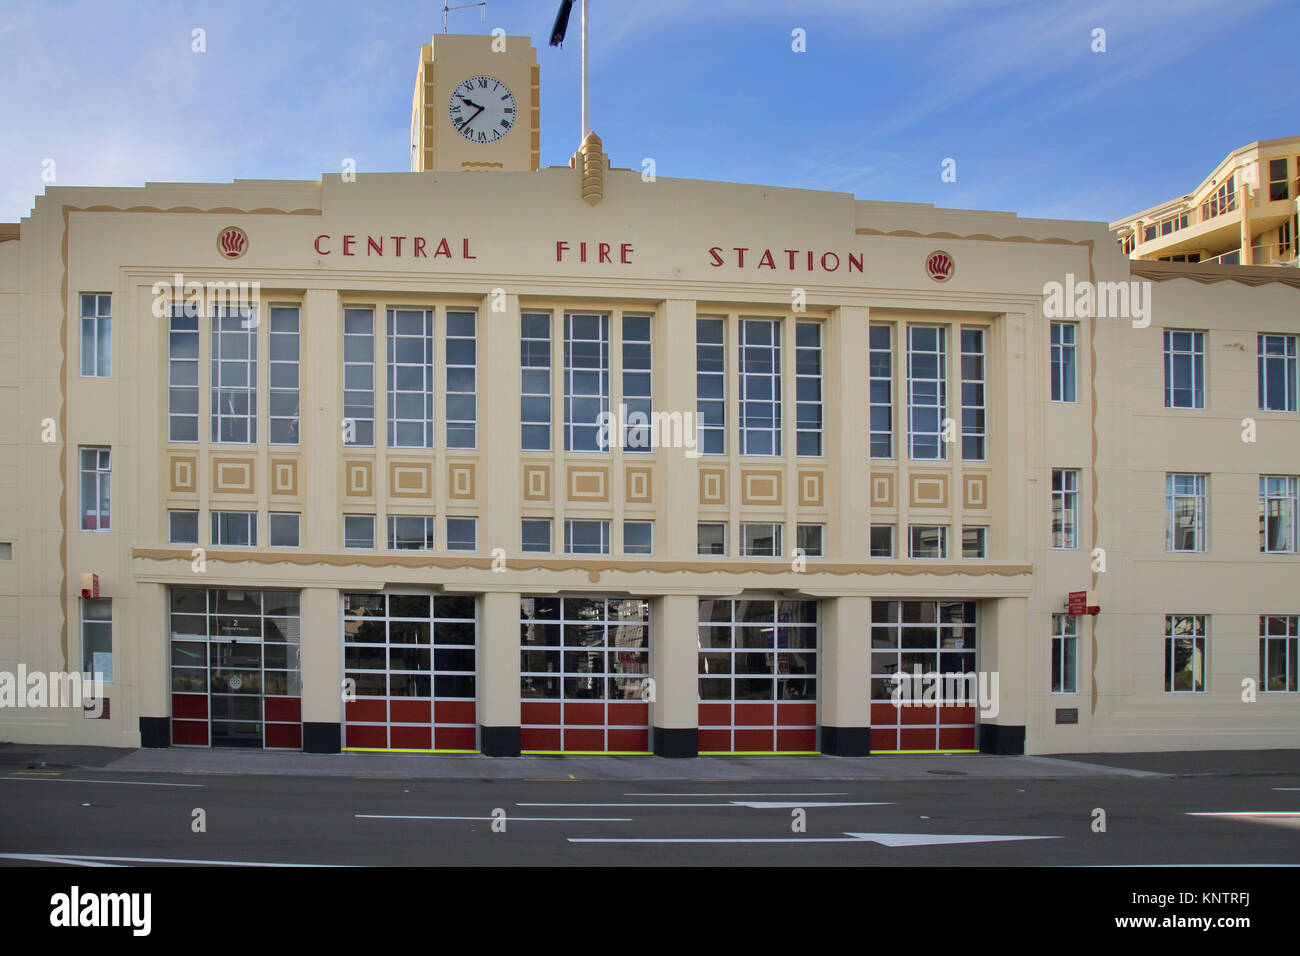 the central fire station in wellington on the north island of new zealand - Stock Image